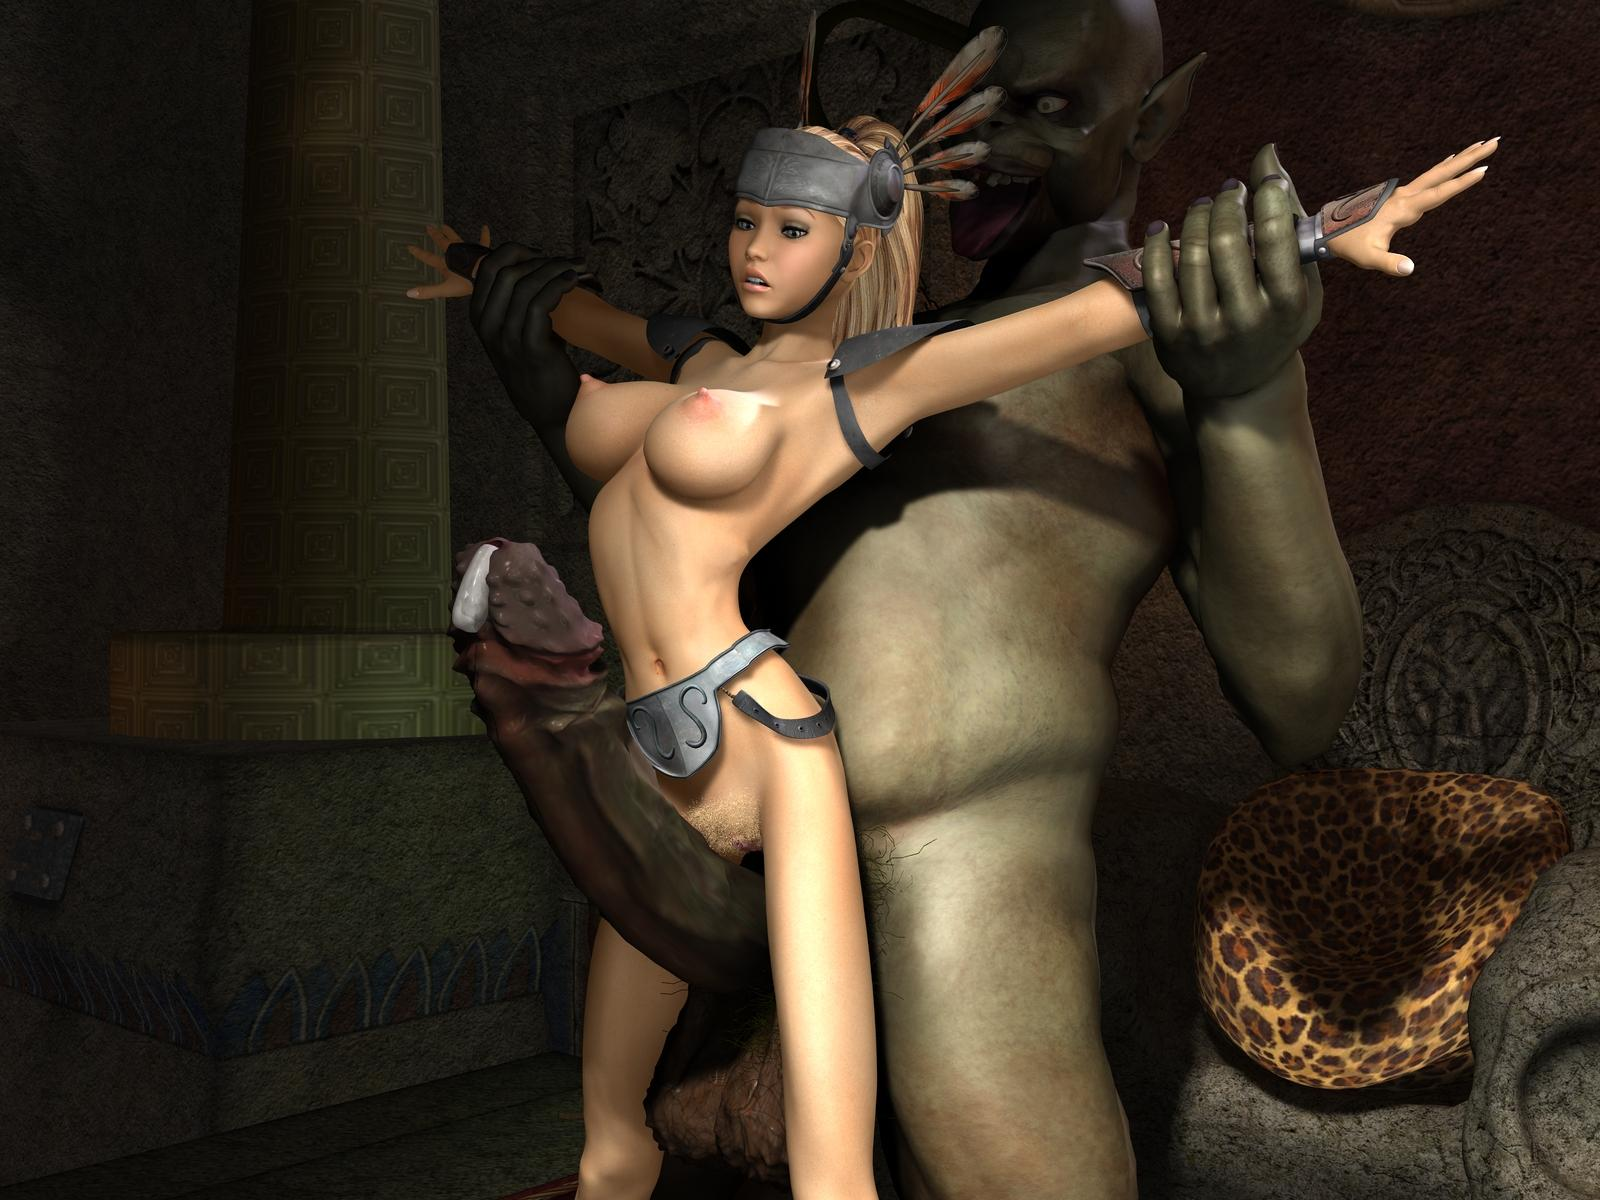 Download 3d cartoon monster xxx 3gp erotica picture